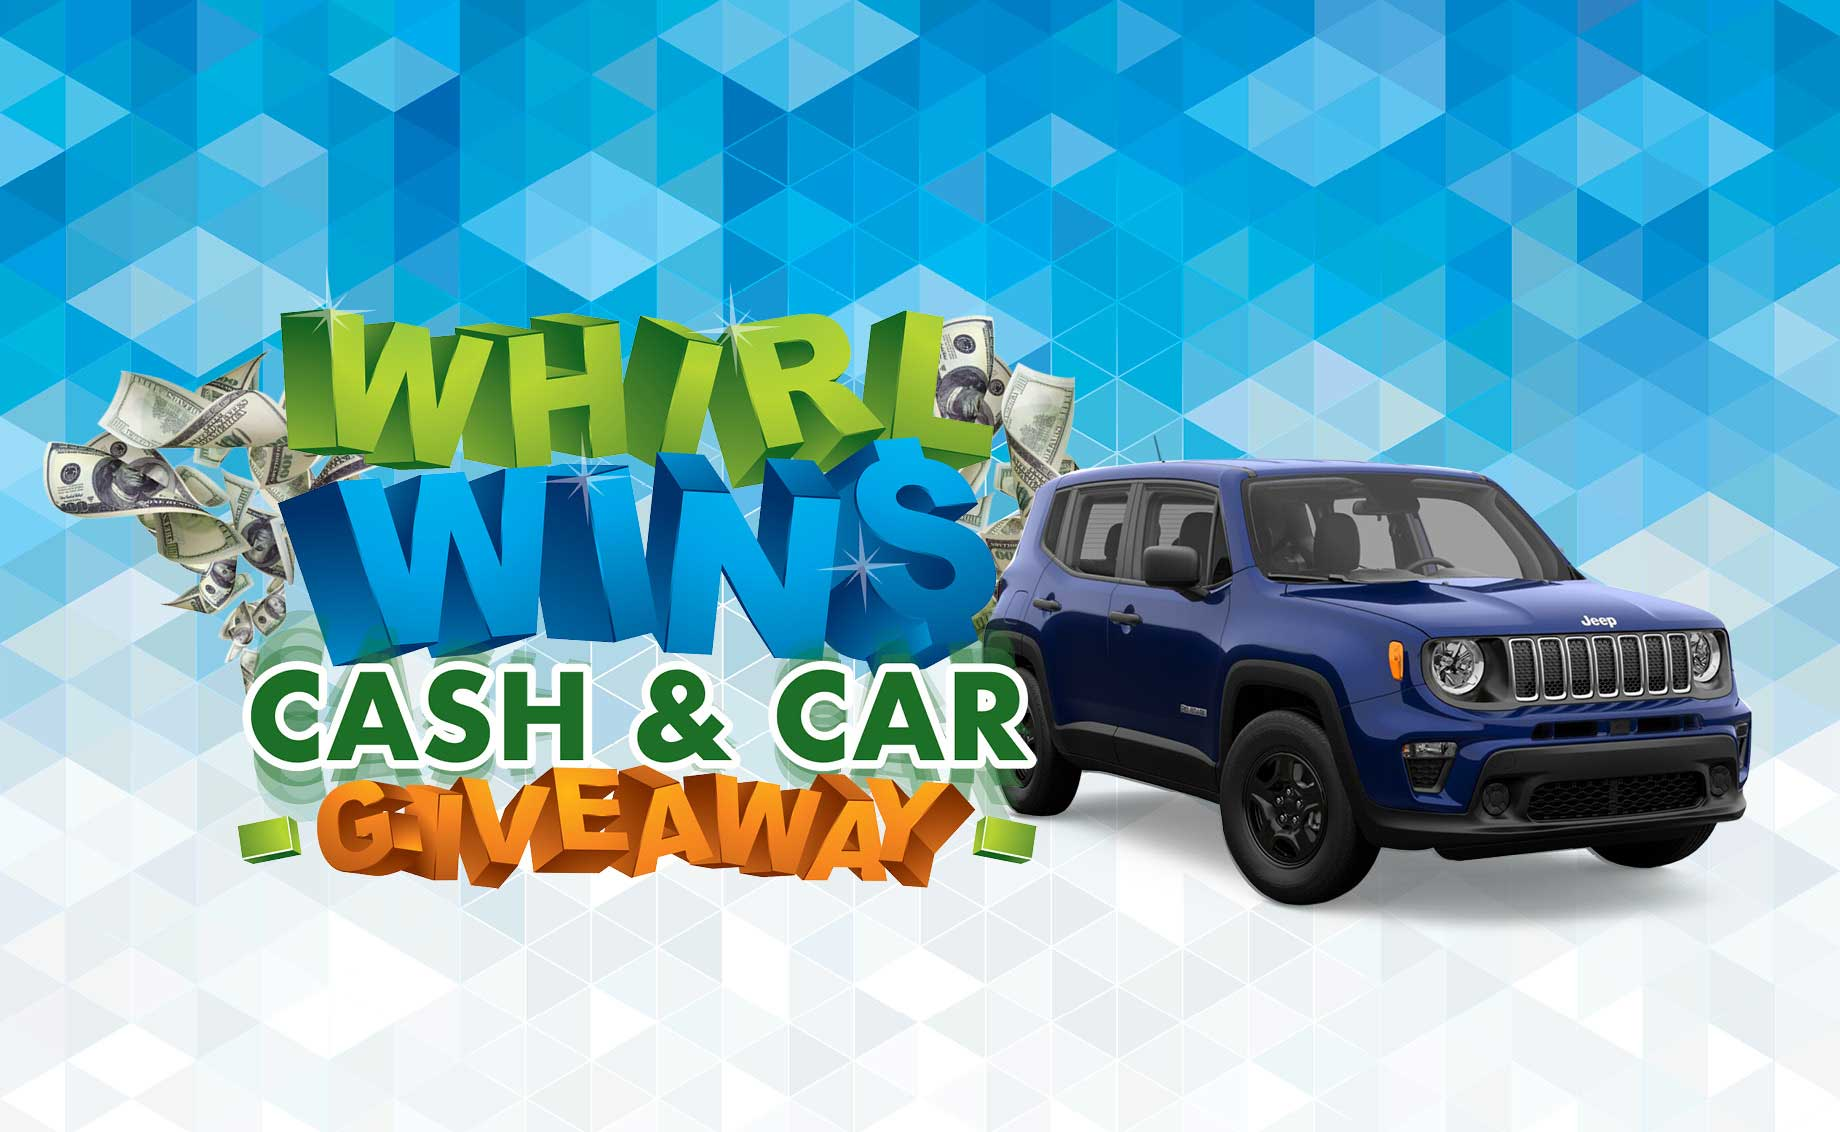 Whirl Wins Cash & Car Giveaway